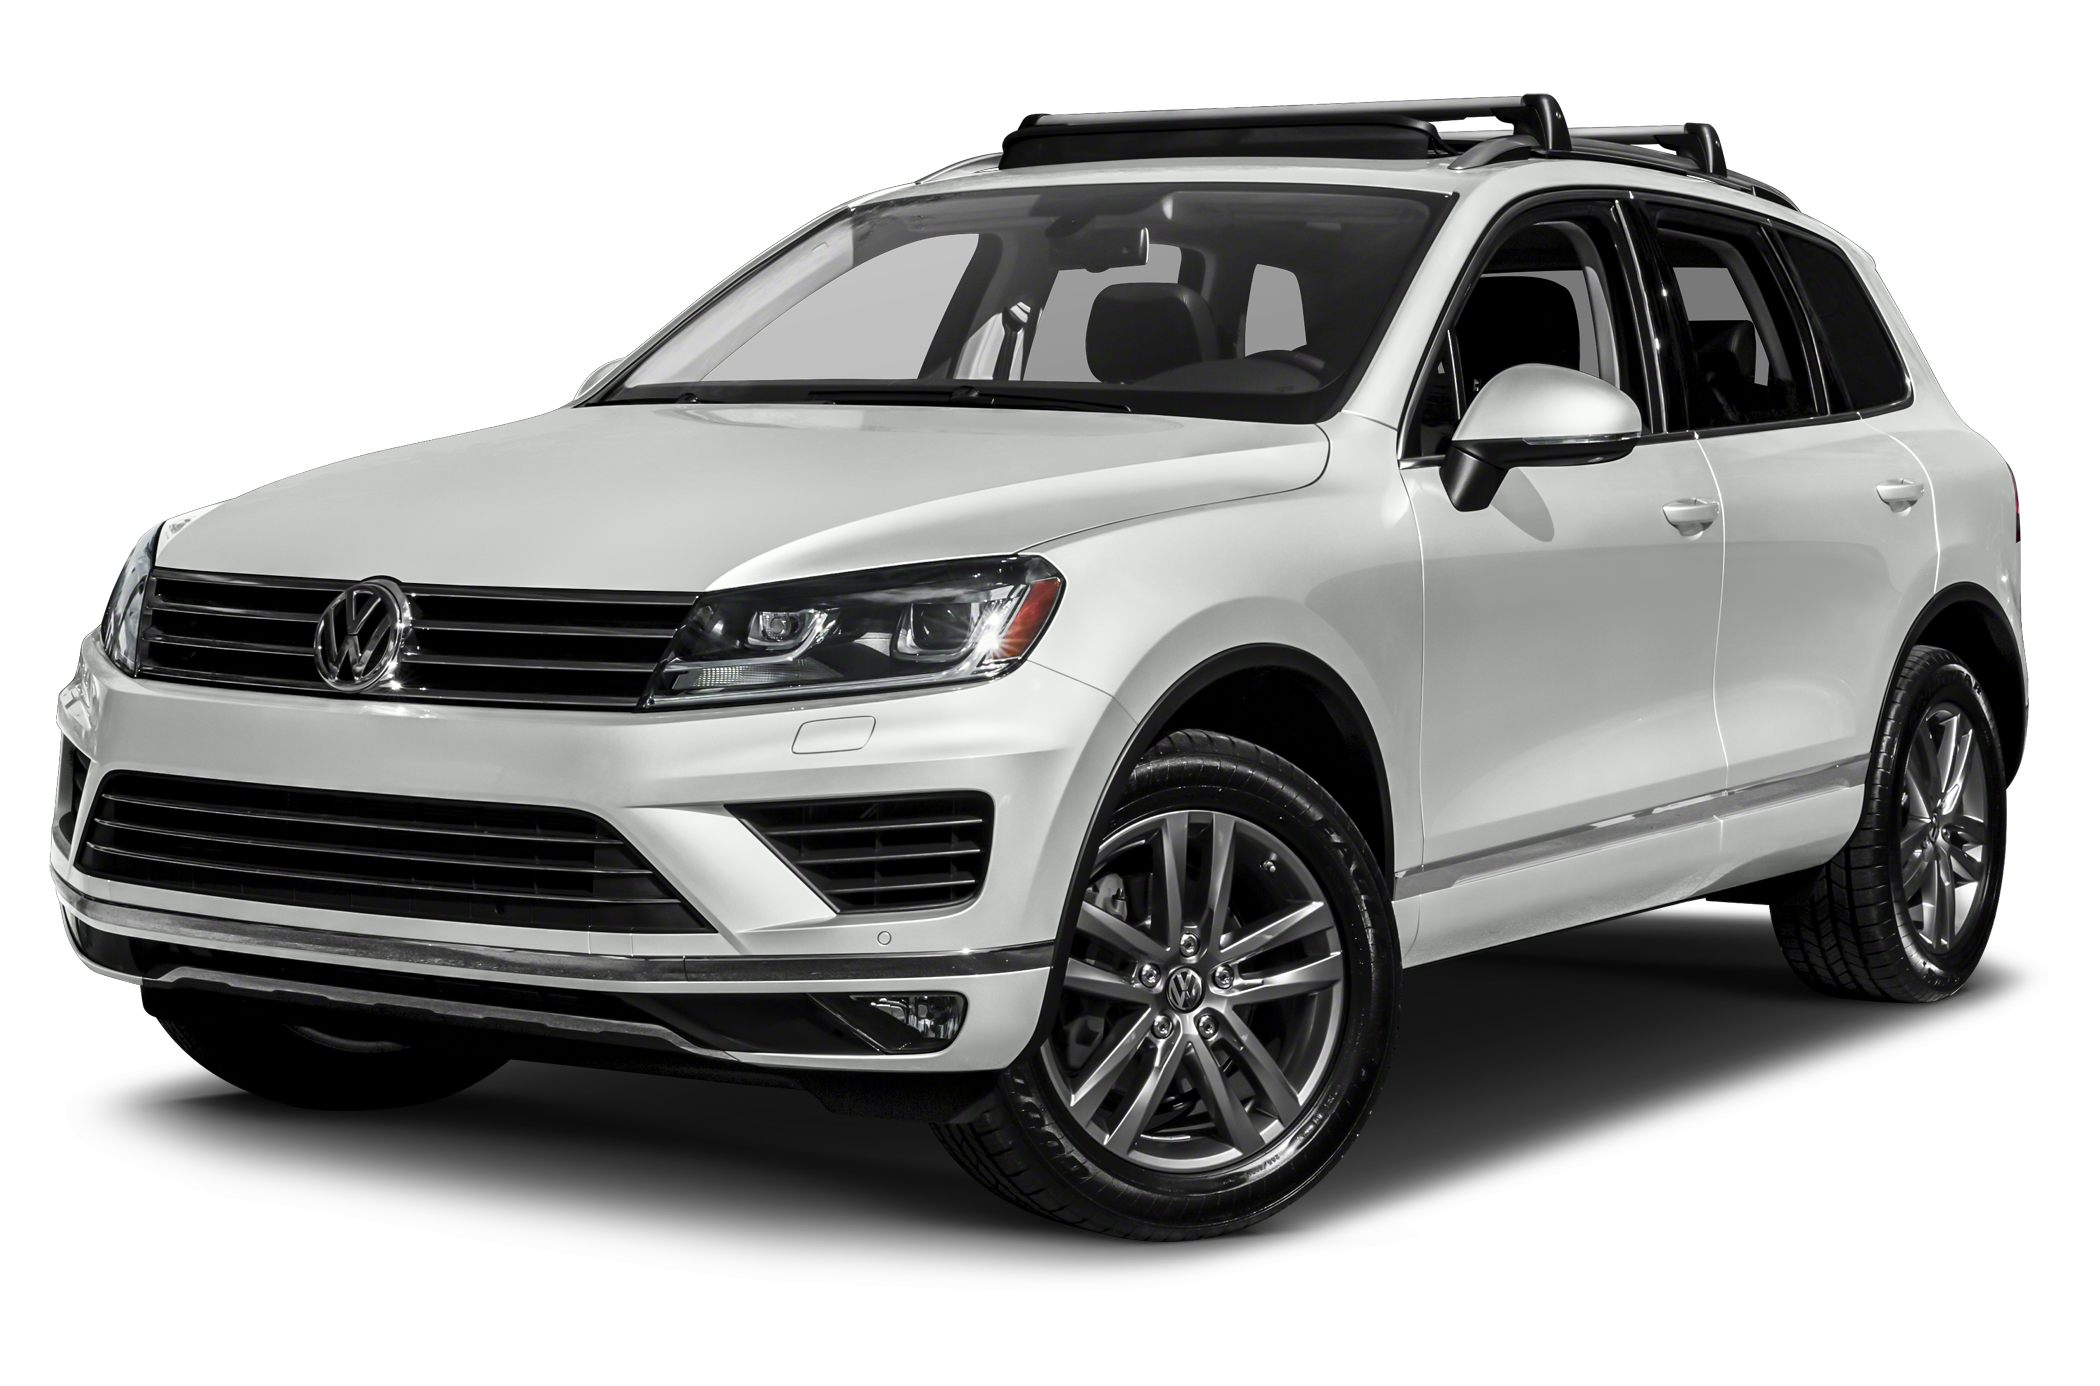 2015 Volkswagen Touareg Tdi Lux 4dr All Wheel Drive 4motion Equipment